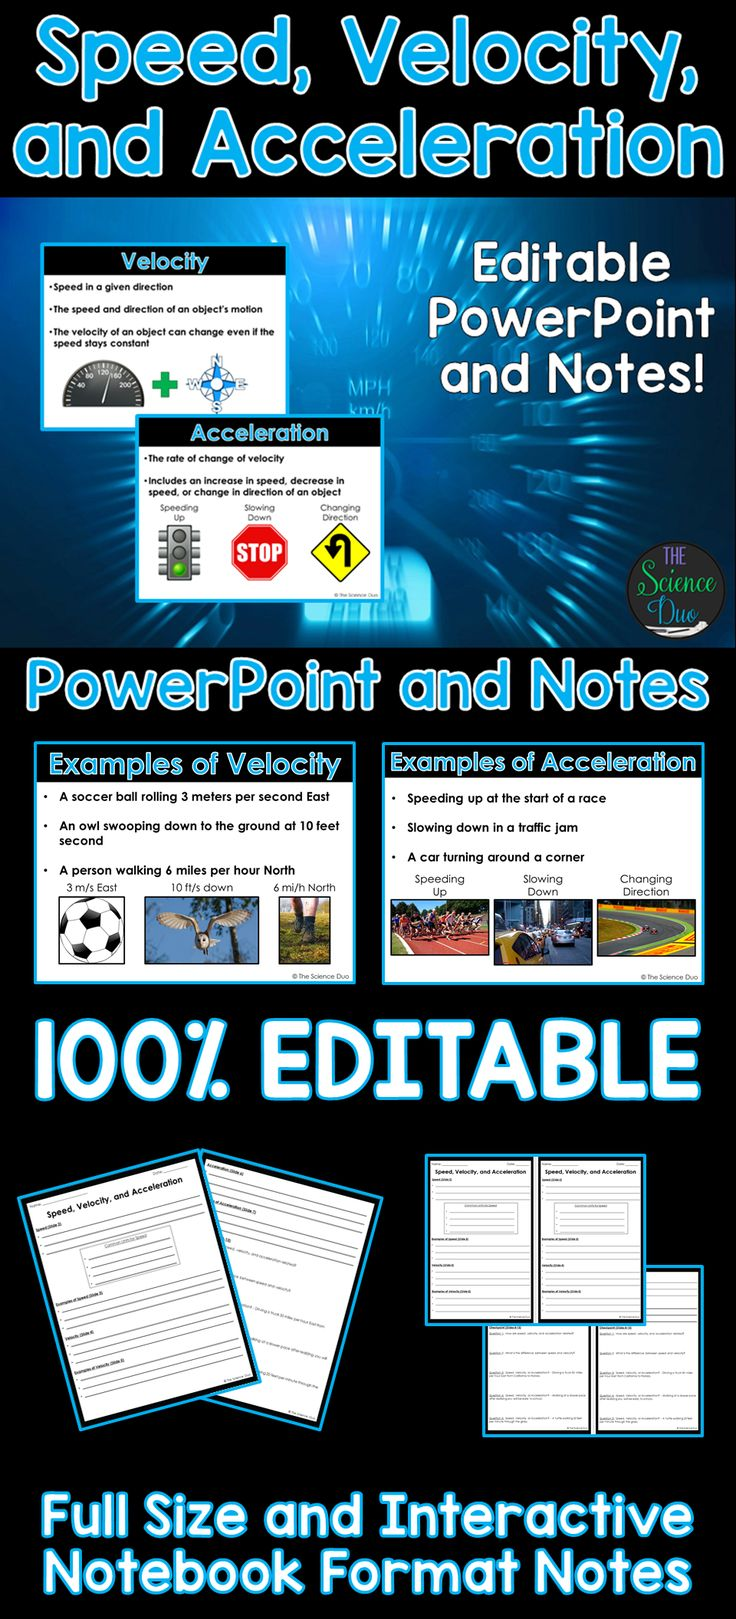 Introduce the basics of Speed, Velocity, and Acceleration with this PowerPoint presentation. This resource covers all the basics of speed, velocity, and acceleration with examples of each and student notes pages.